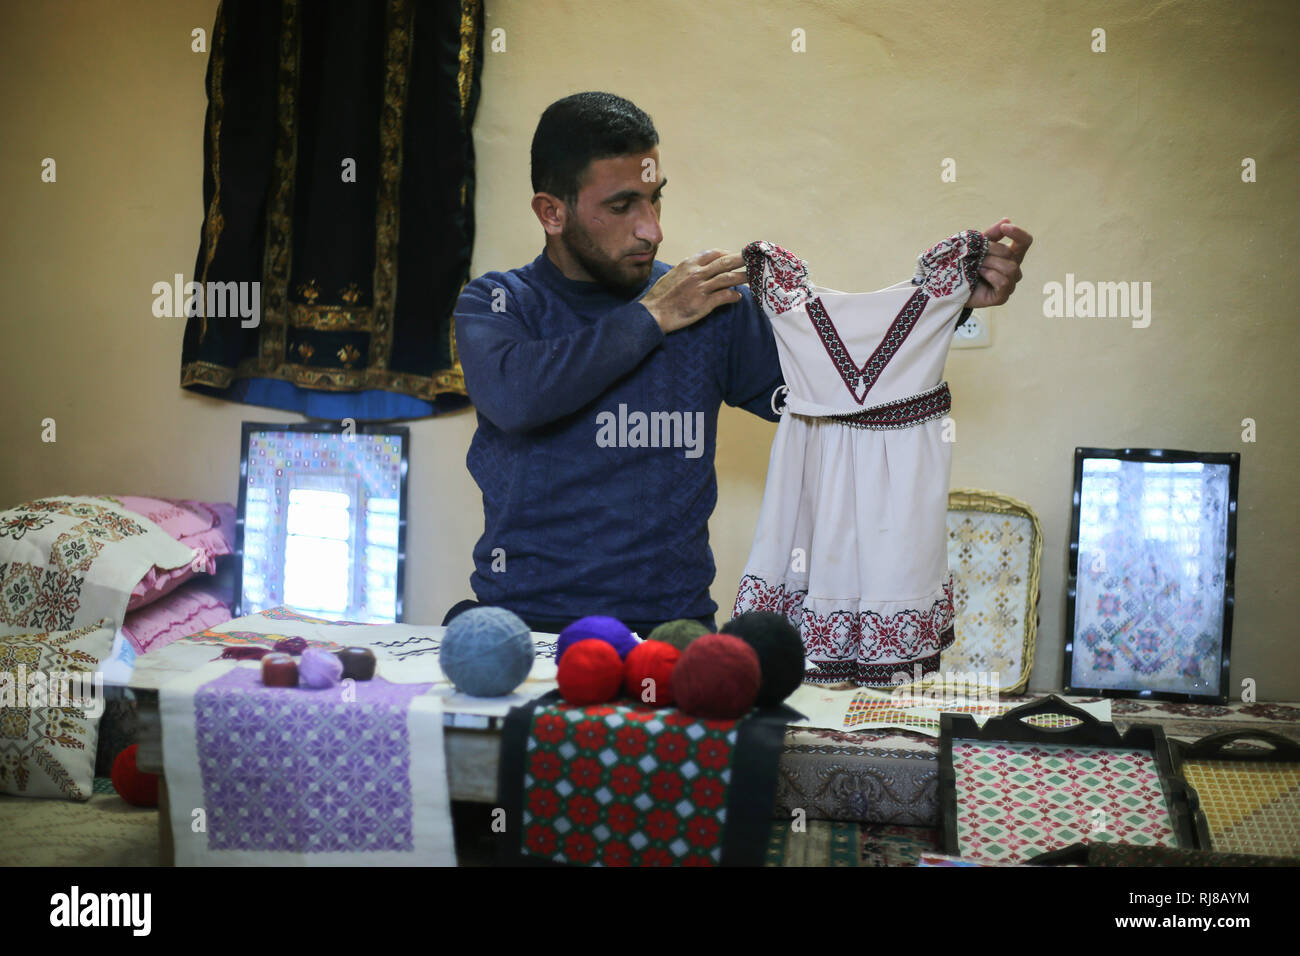 Suleiman seen looking at a dress during as he works.  Palestinian young man Suleiman Abu Taima 23 years inherited the embroidery profession from his mother and work in the absence of job opportunities and the worsening economic situation and the siege on the Gaza Strip. - Stock Image